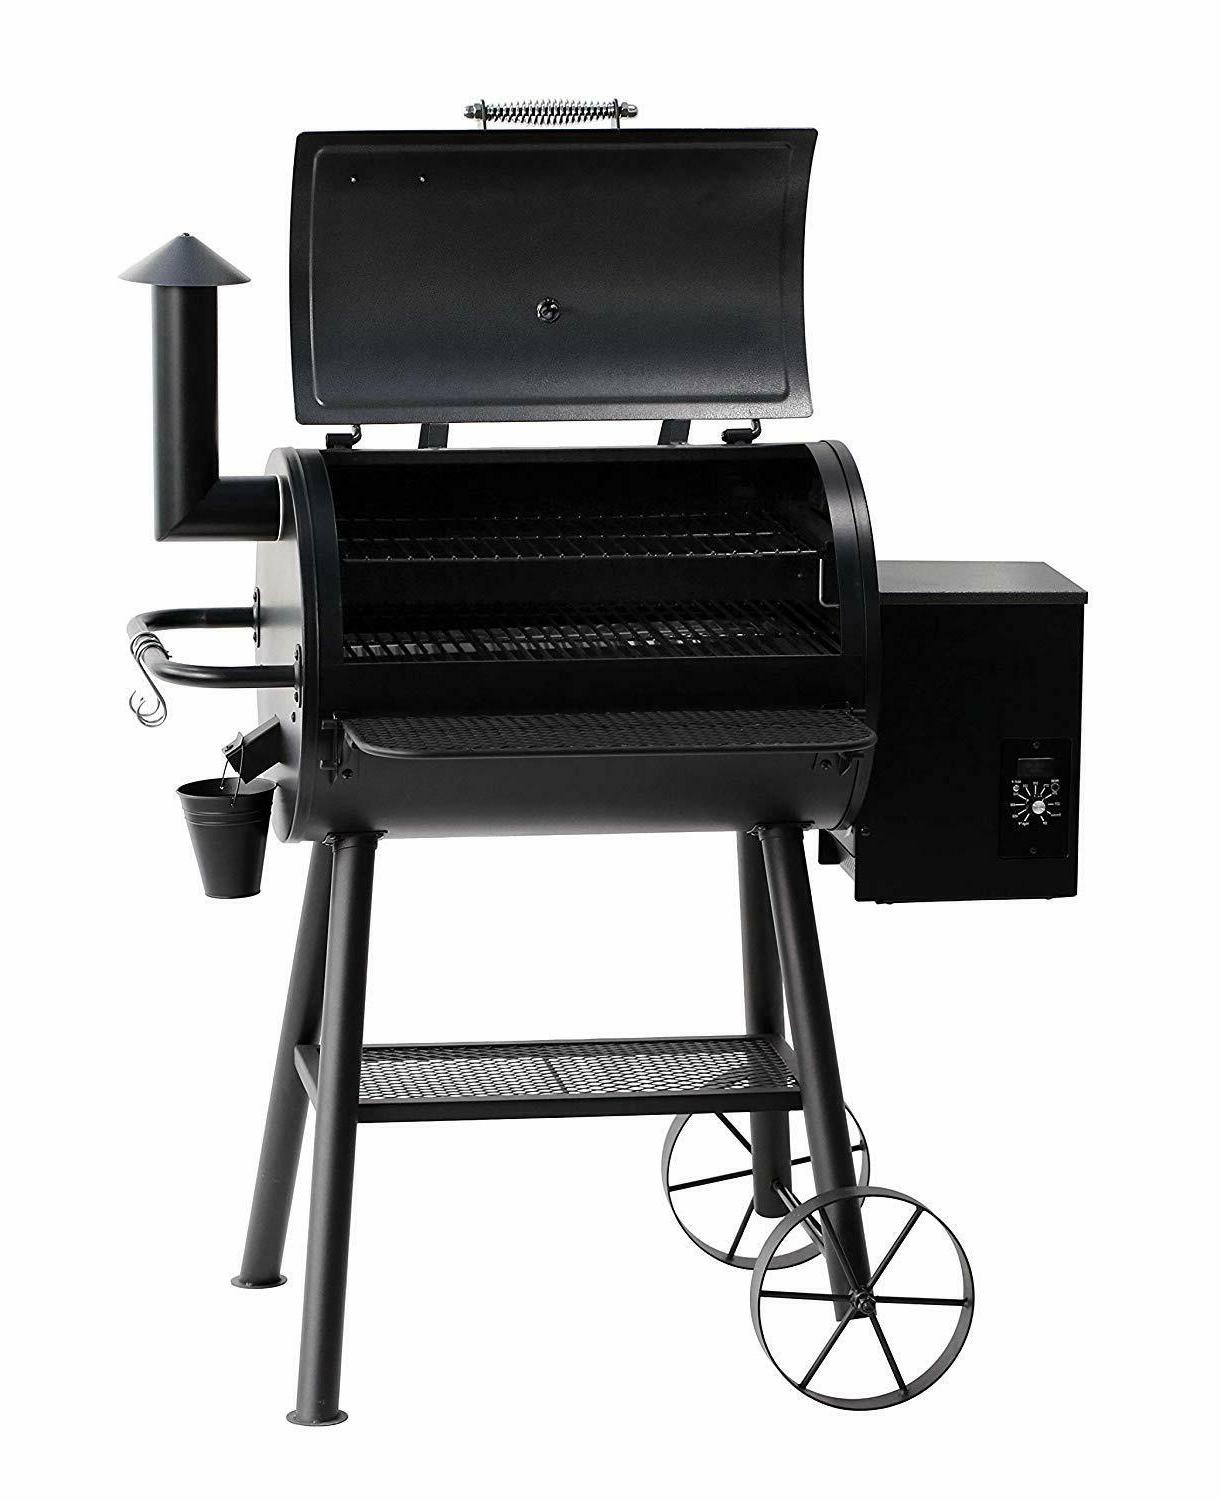 2019 HORN Grill Wood Smoker Auto Temperature Control Best